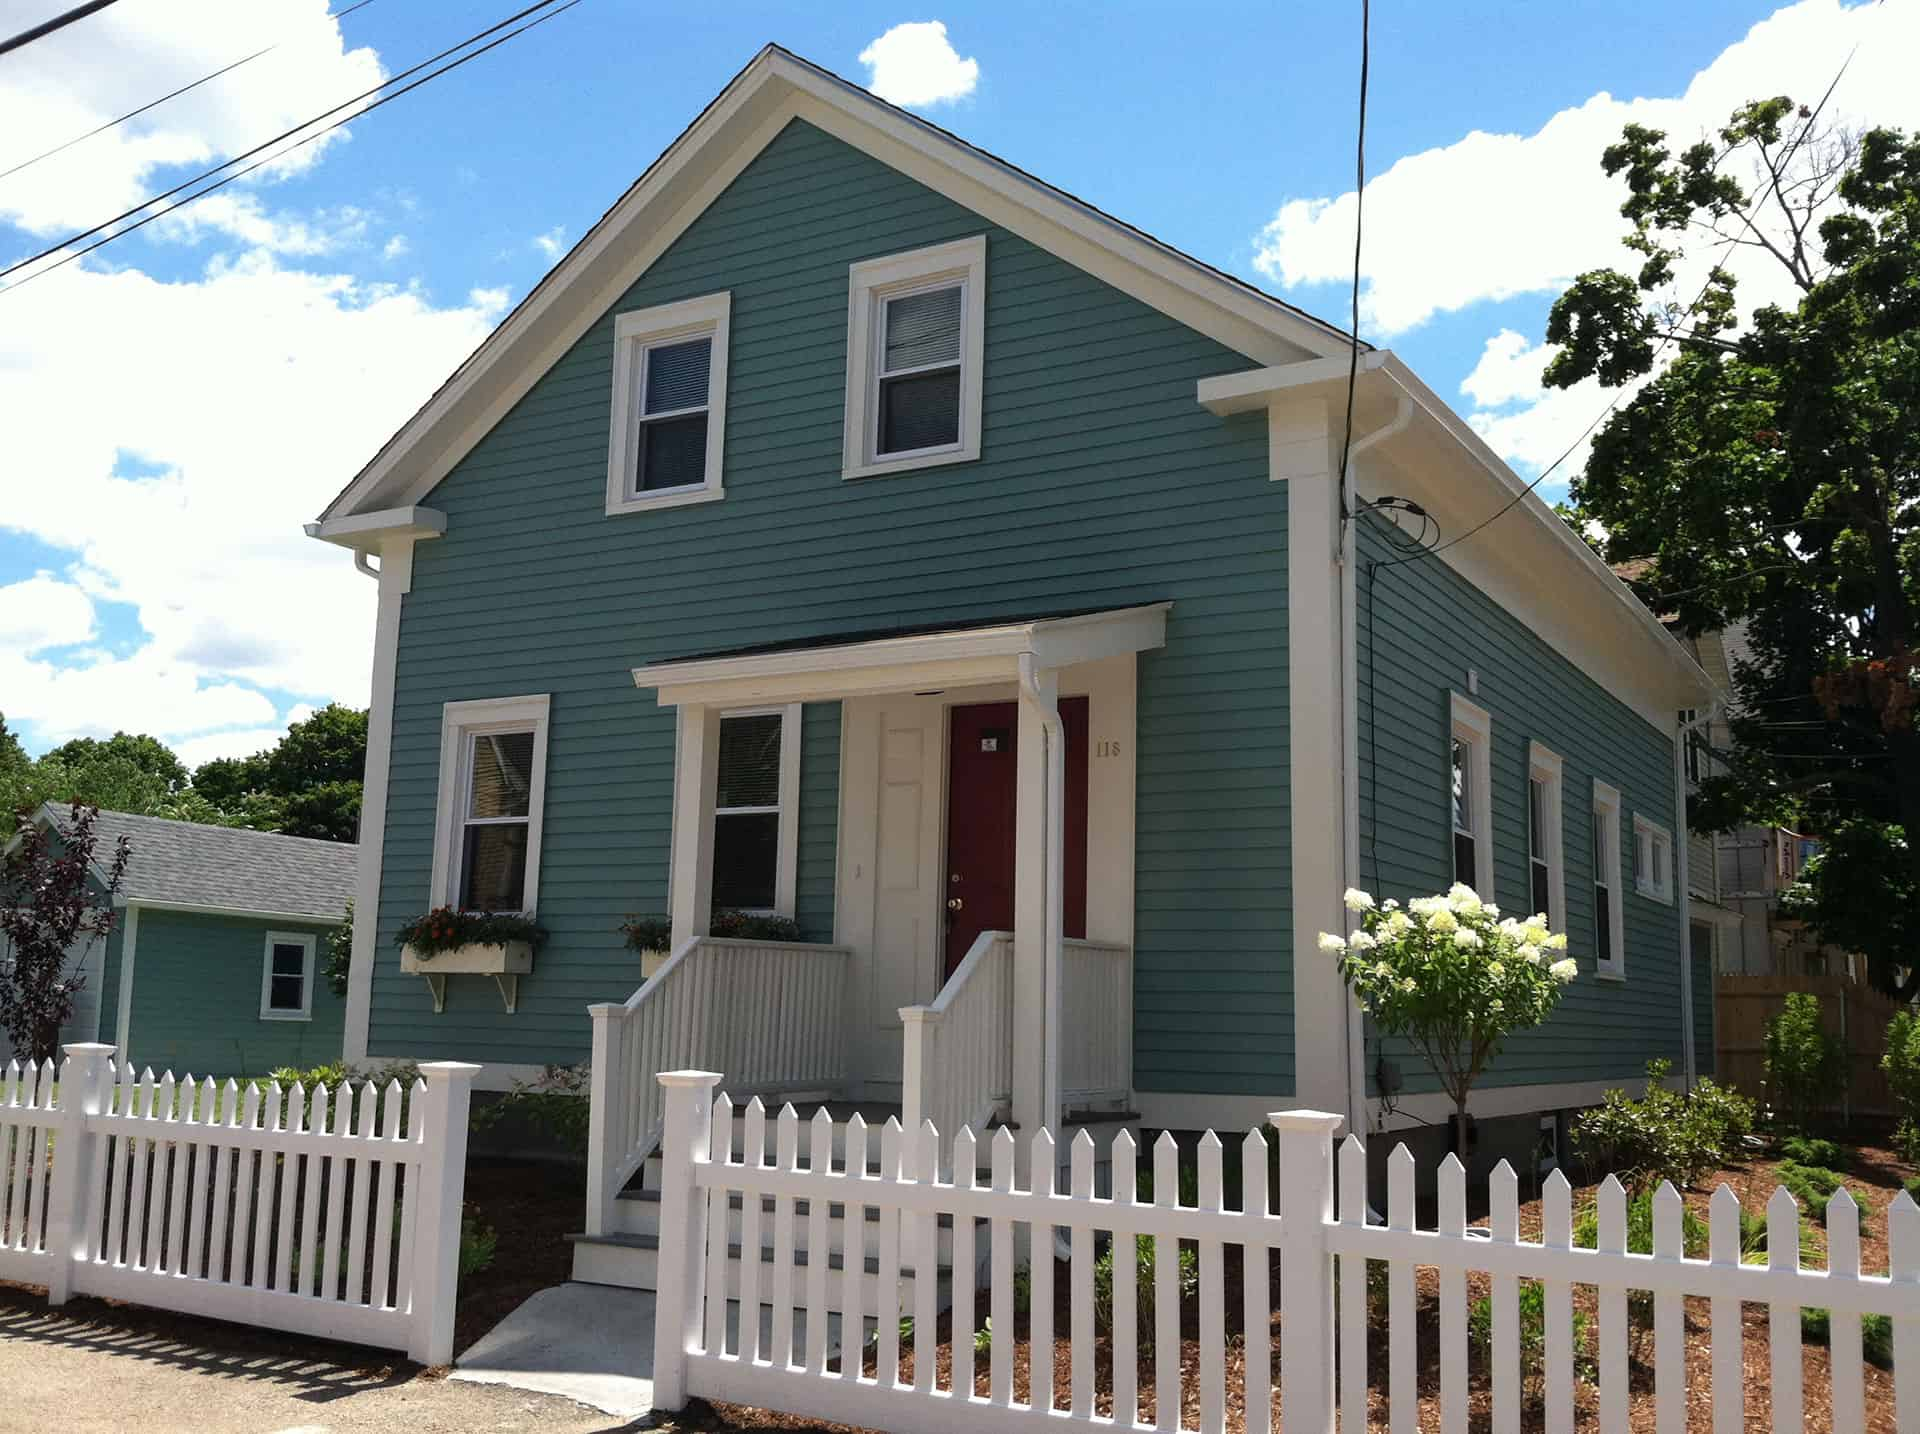 Green one and a half story home with window boxes and a picket fence.